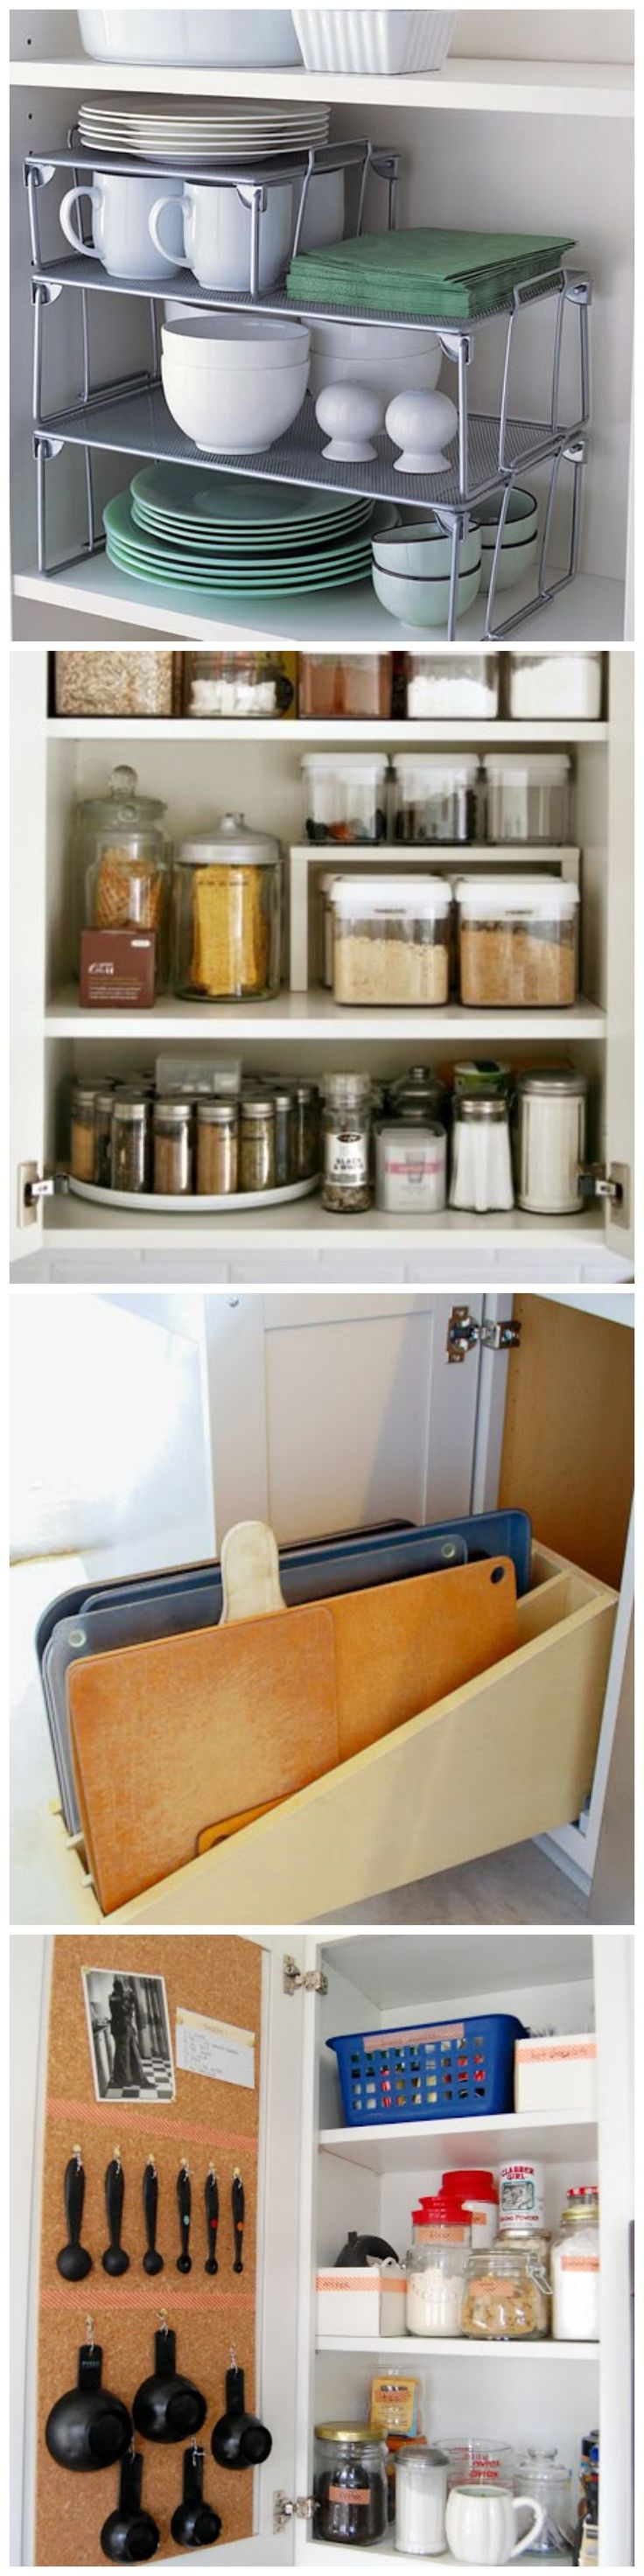 Best 25 Countertop organization ideas on Pinterest